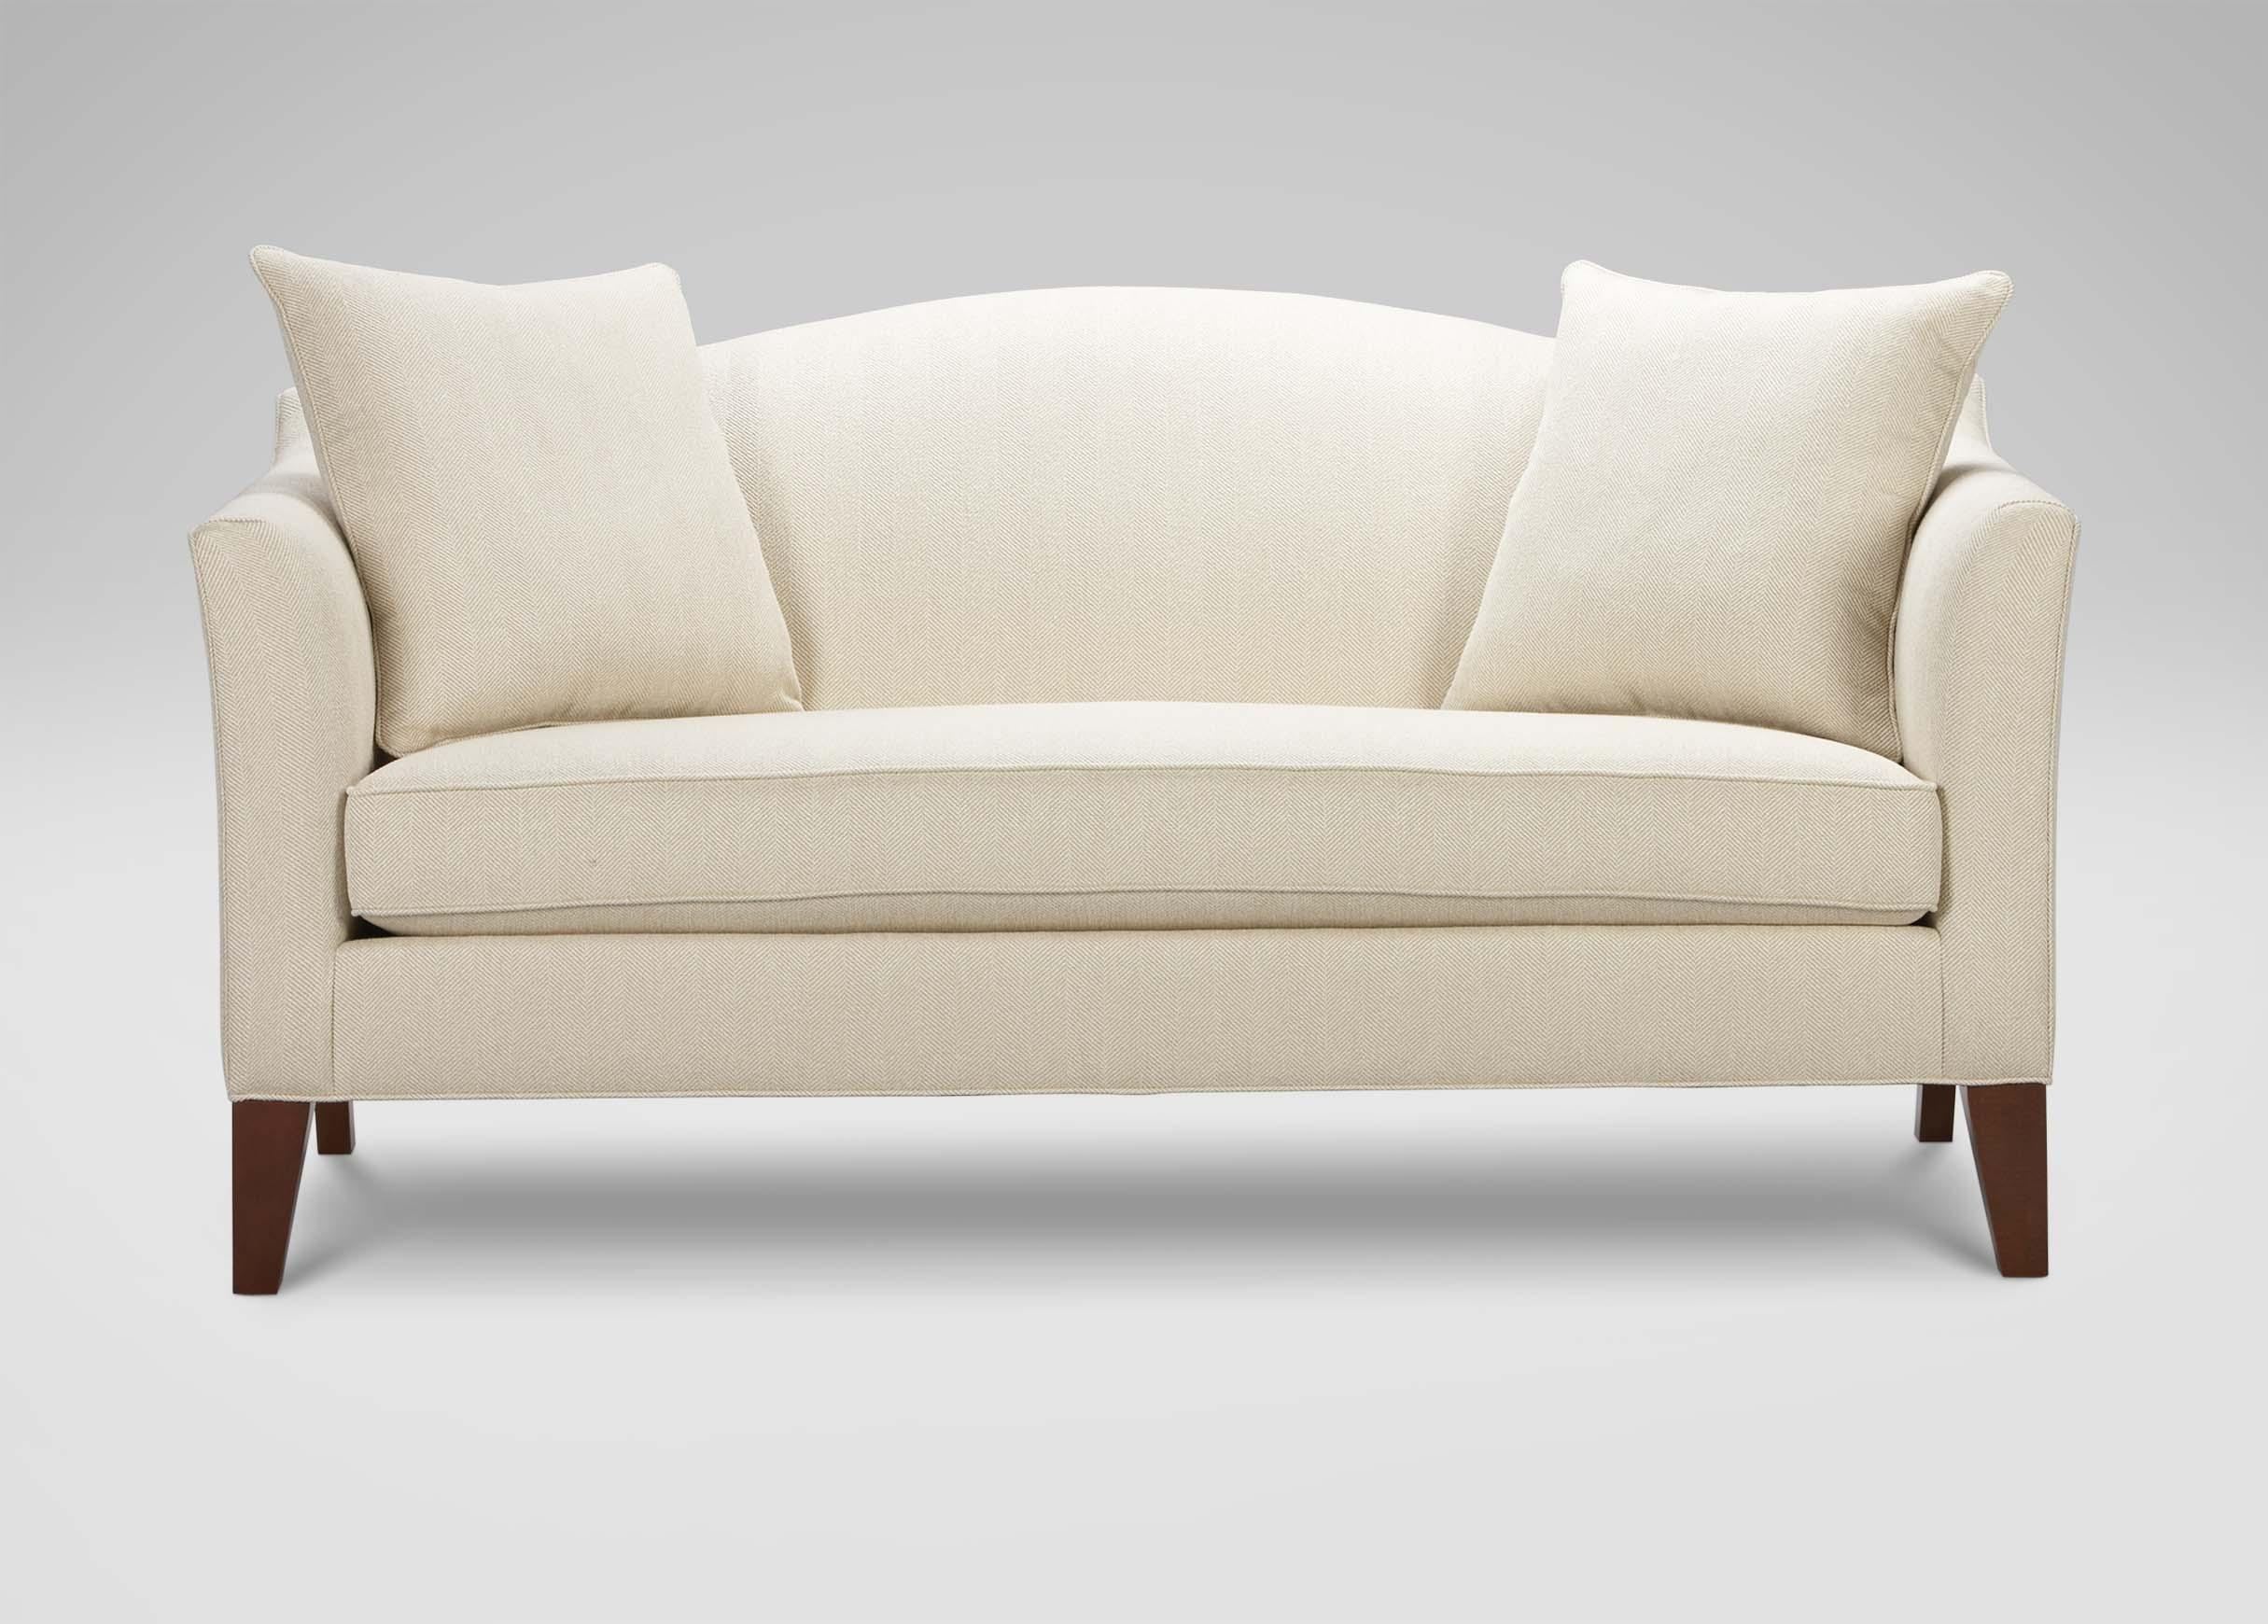 Hartwell Sofa | Sofas & Loveseats For Ethan Allen Sofas And Chairs (View 17 of 20)